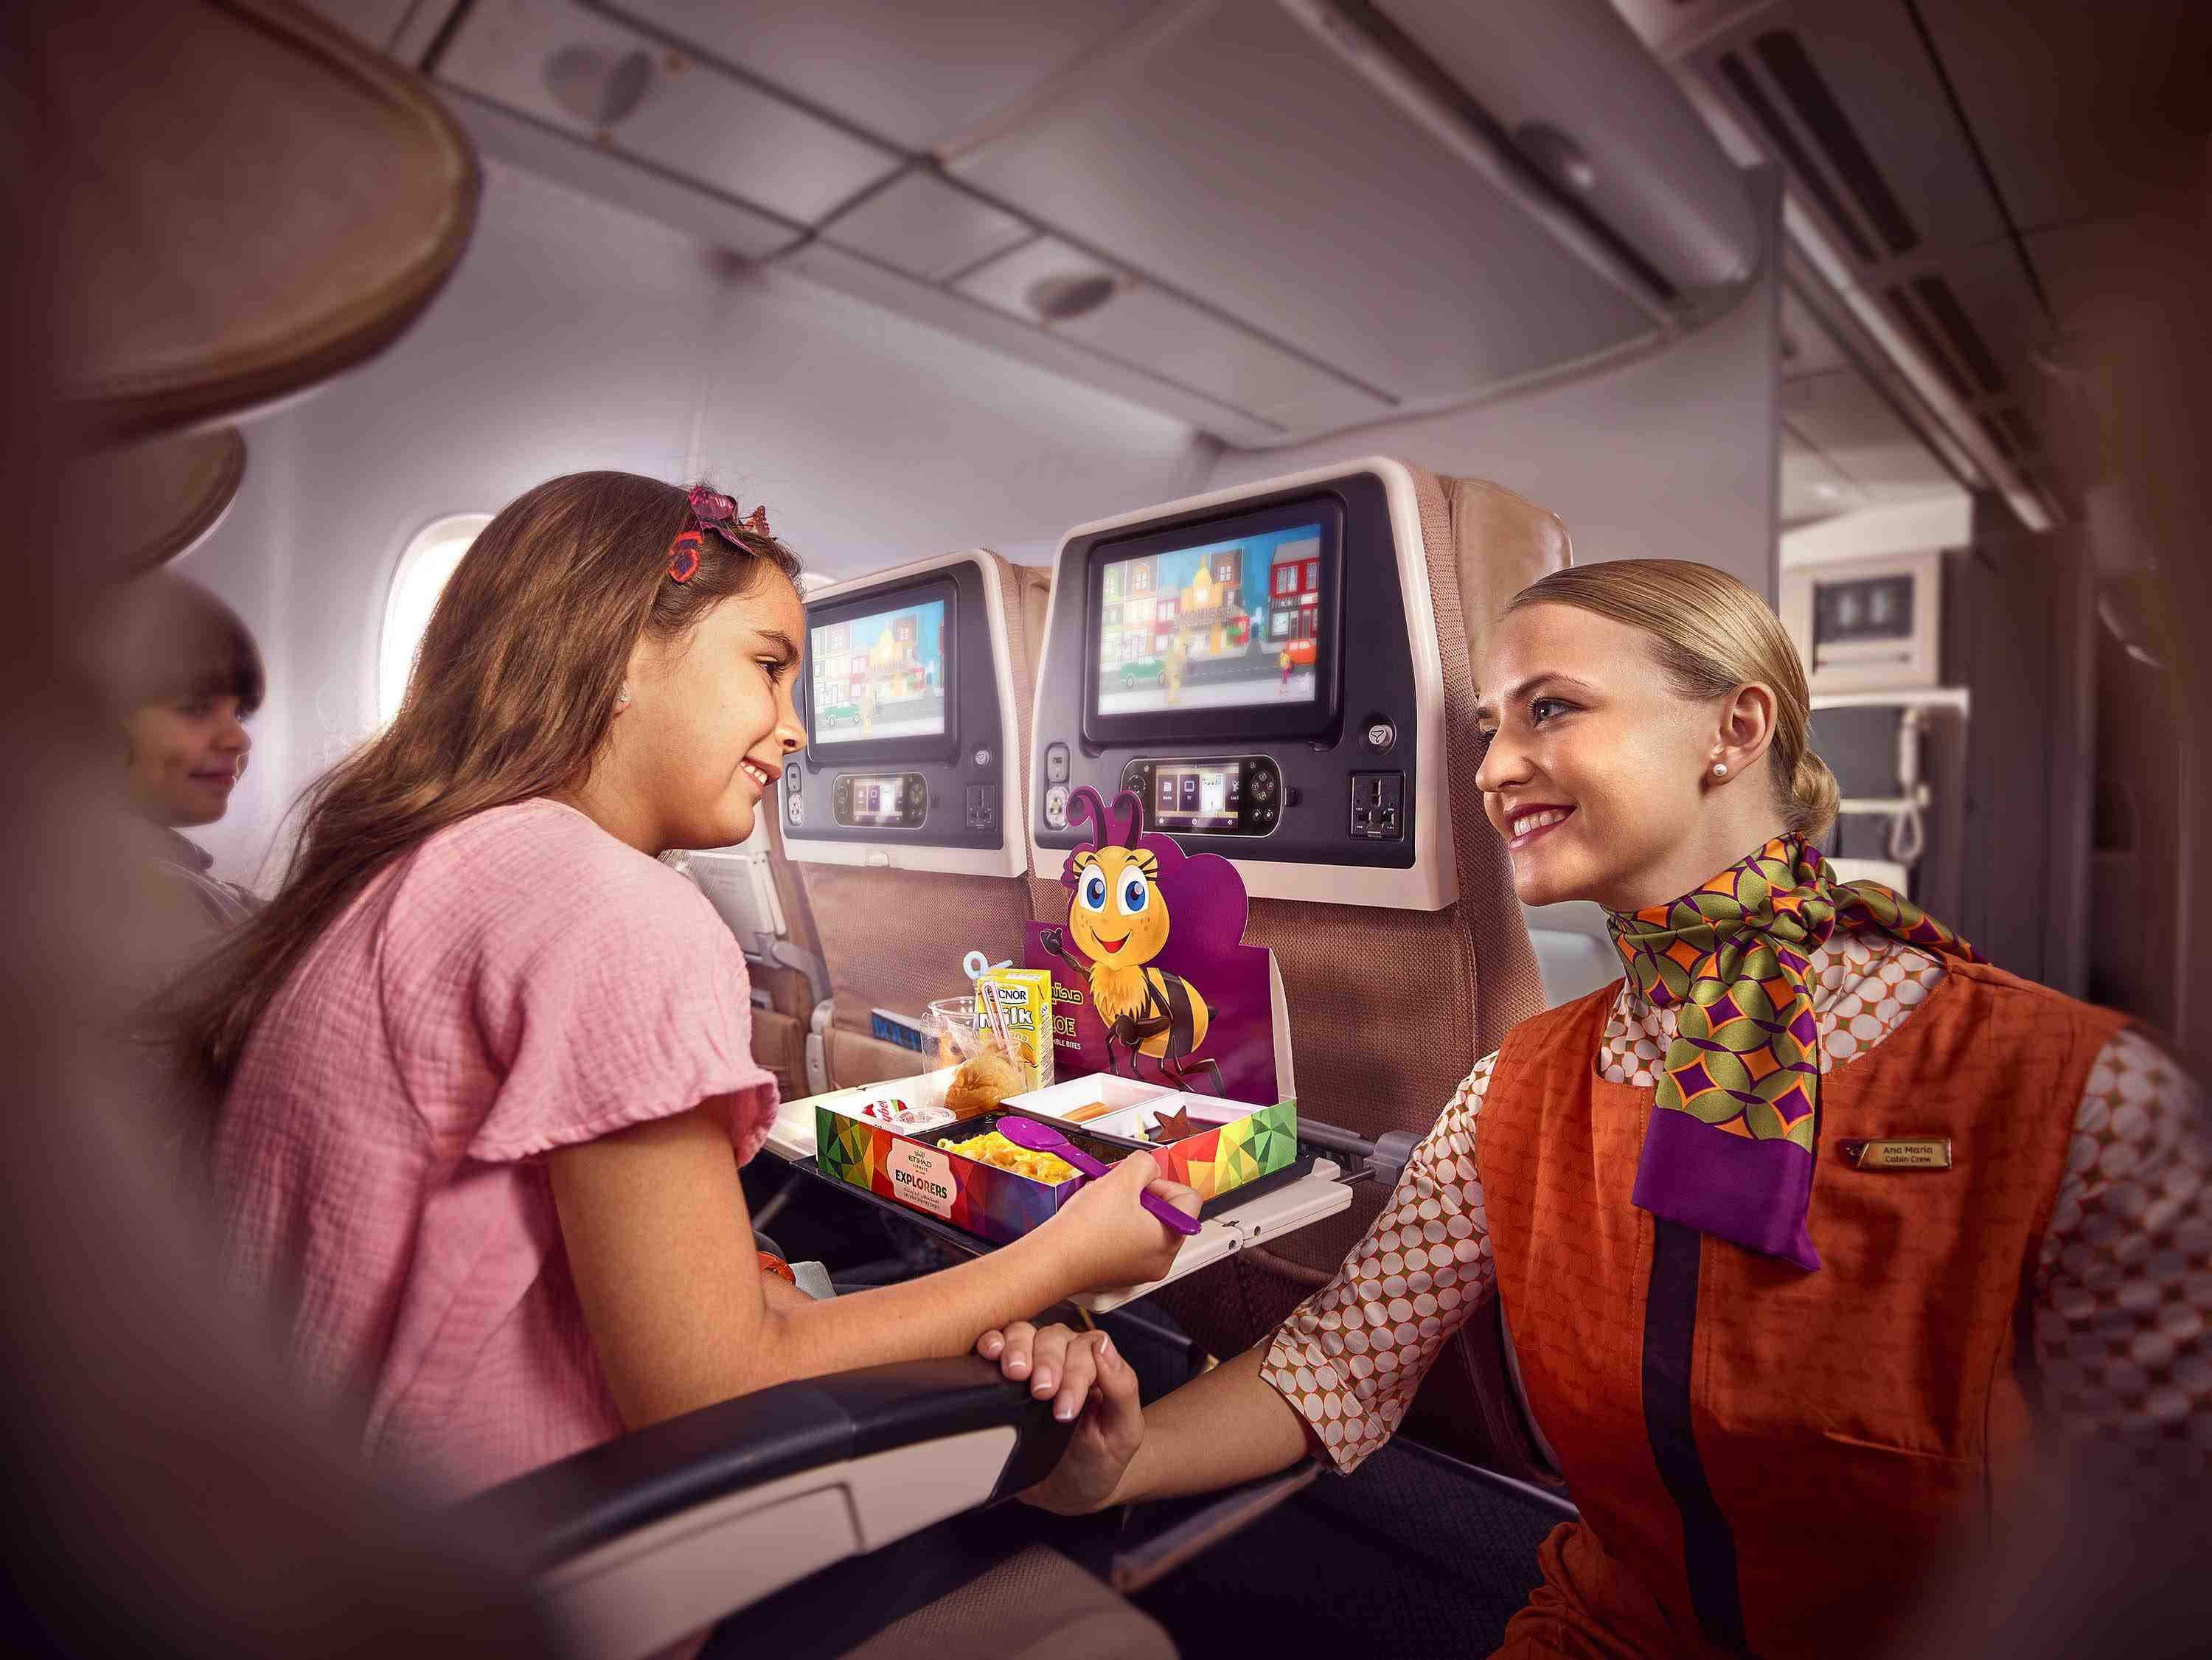 Mobile streaming could be the future of your in-flight entertainment